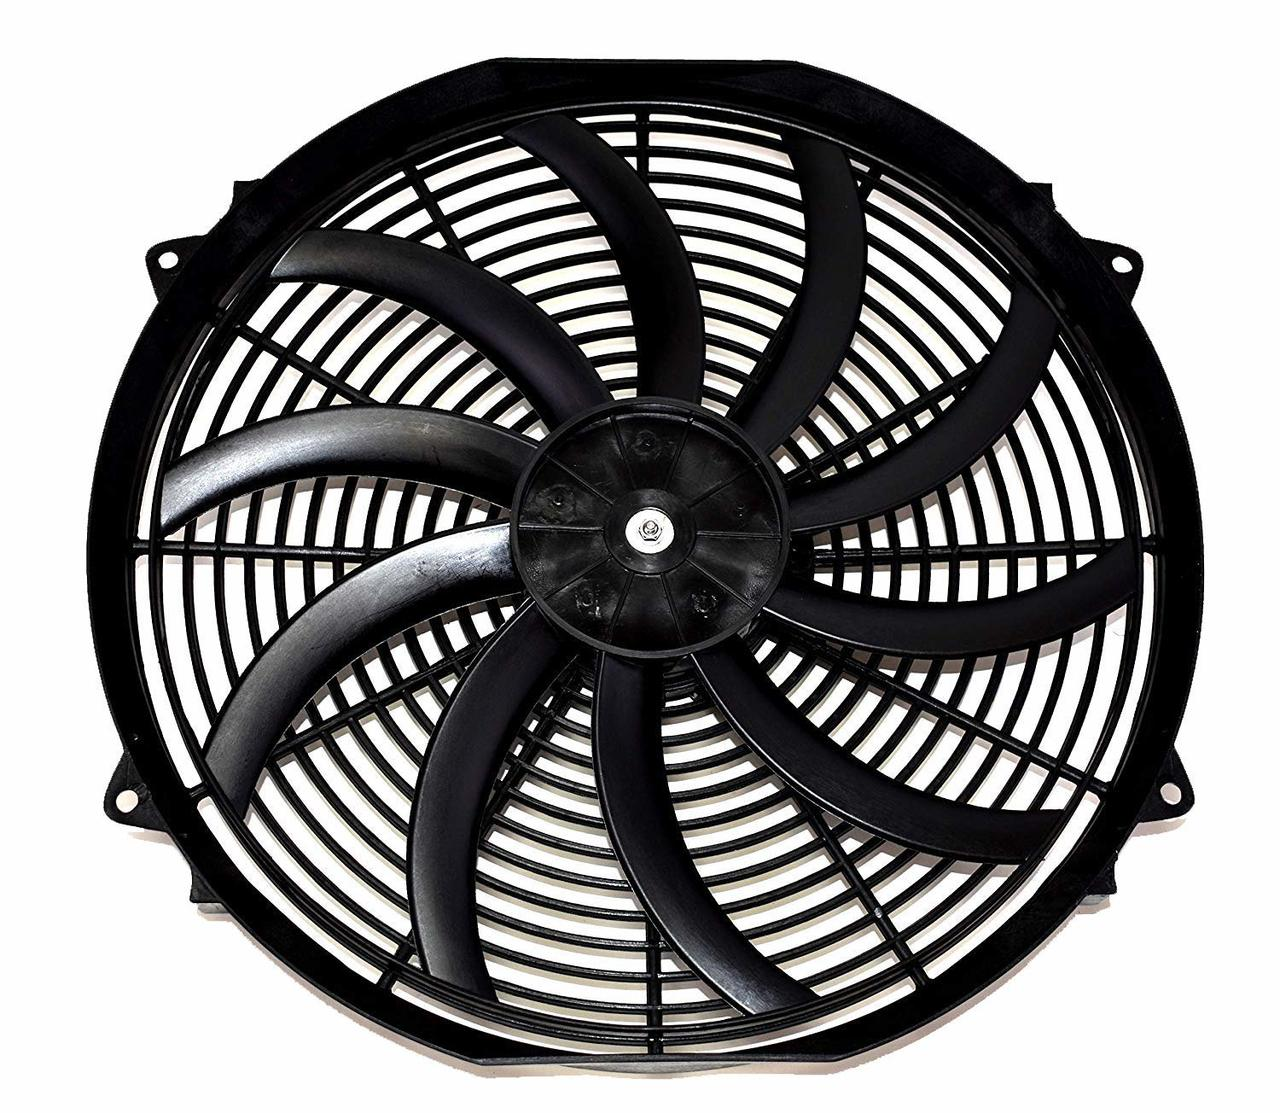 A-Team Performance Electric Radiator Cooling Fan Cooler Heavy Duty Wide Curved 10 S Blades 12V 3000 CFM Reversible Push or Pull with Mounting Kit Black 16""